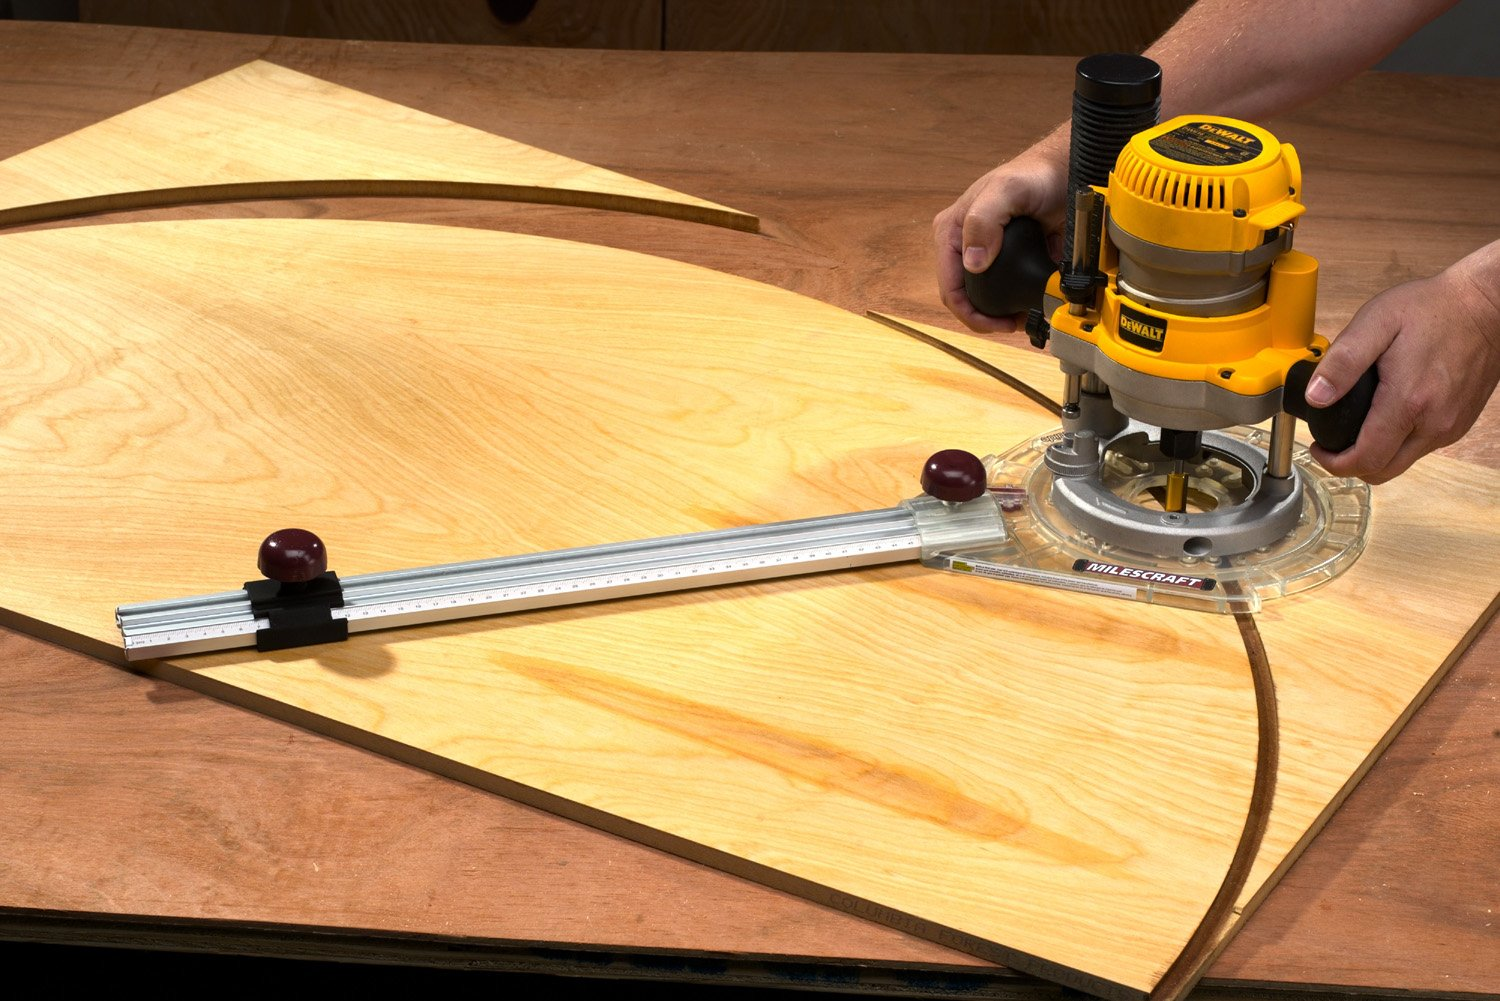 how to cut a circle in wood without power tools